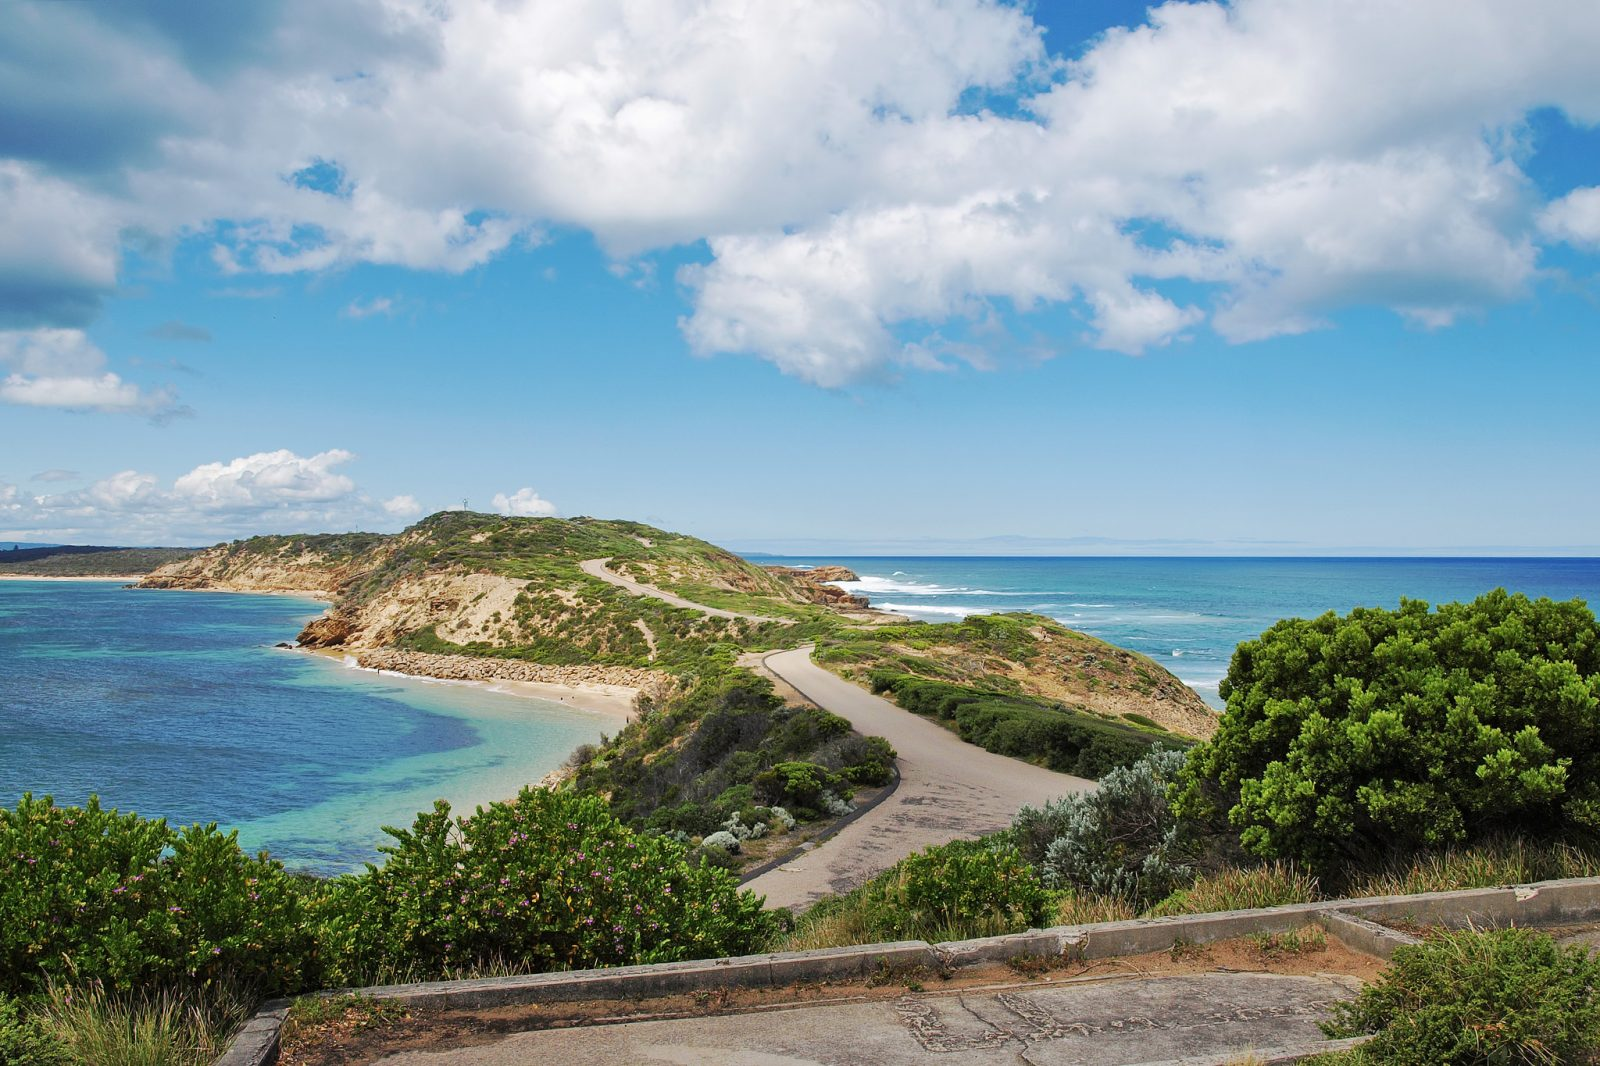 Melbourne day trips: Point Nepean National Park. Photo by Jochen Bullerjahn via Flickr CC